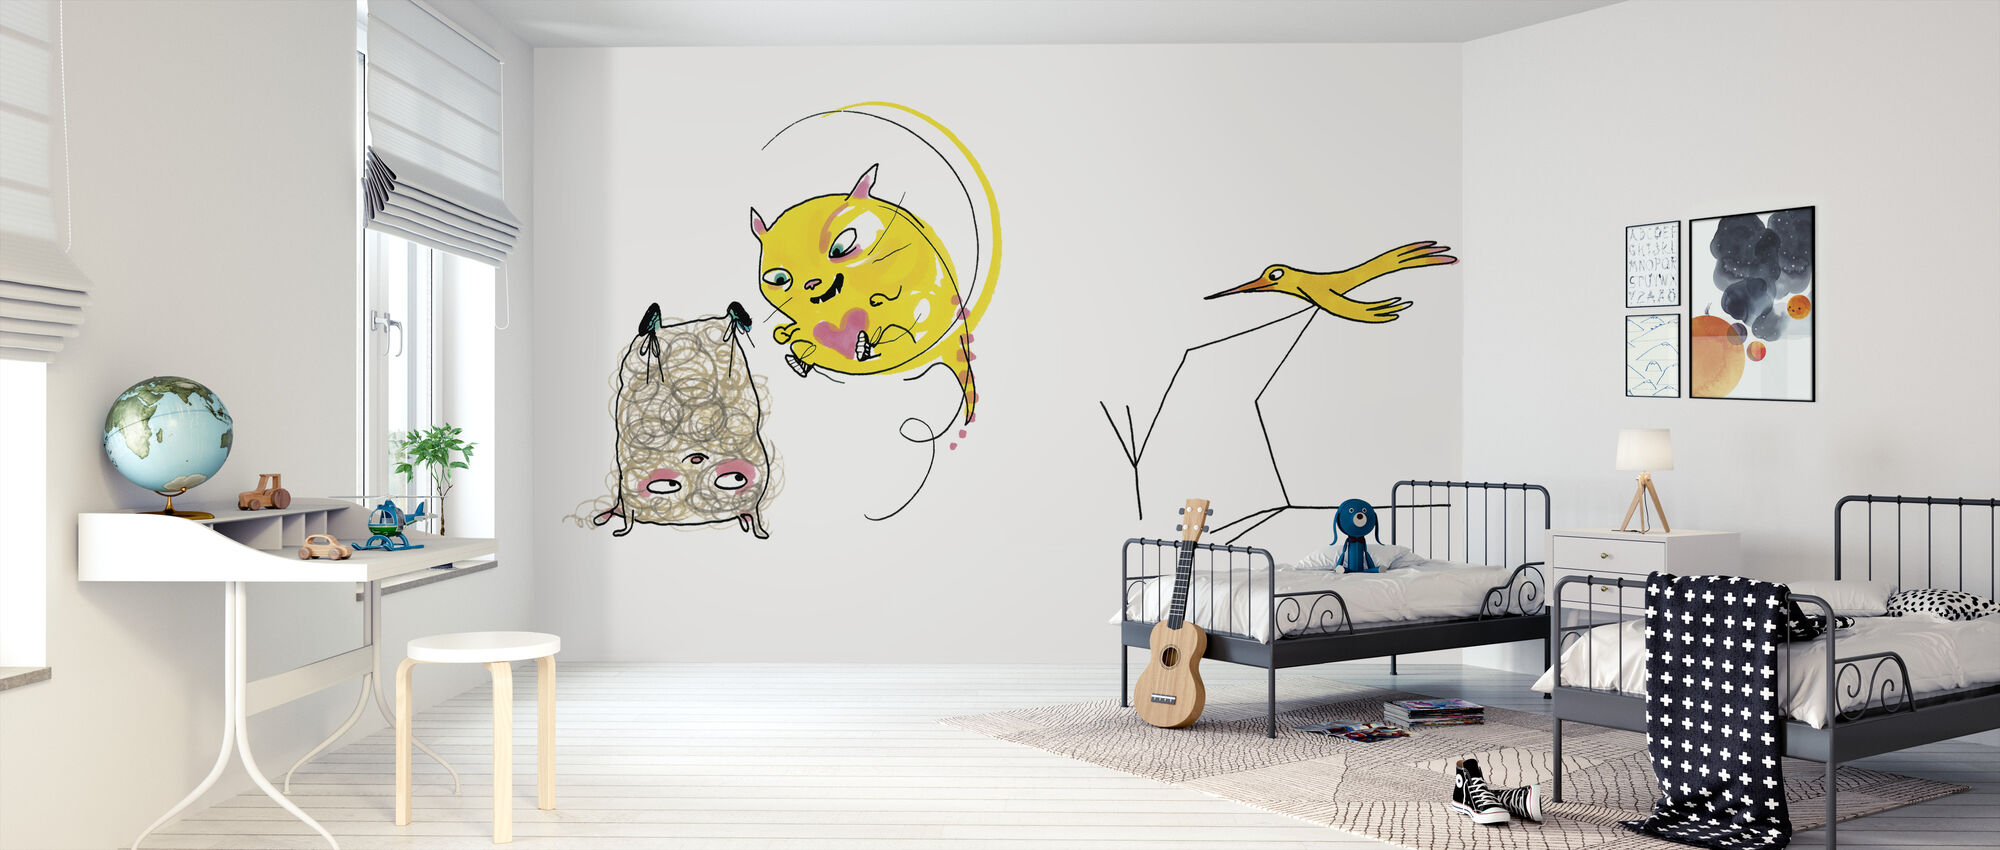 Who is the best - Wallpaper - Kids Room